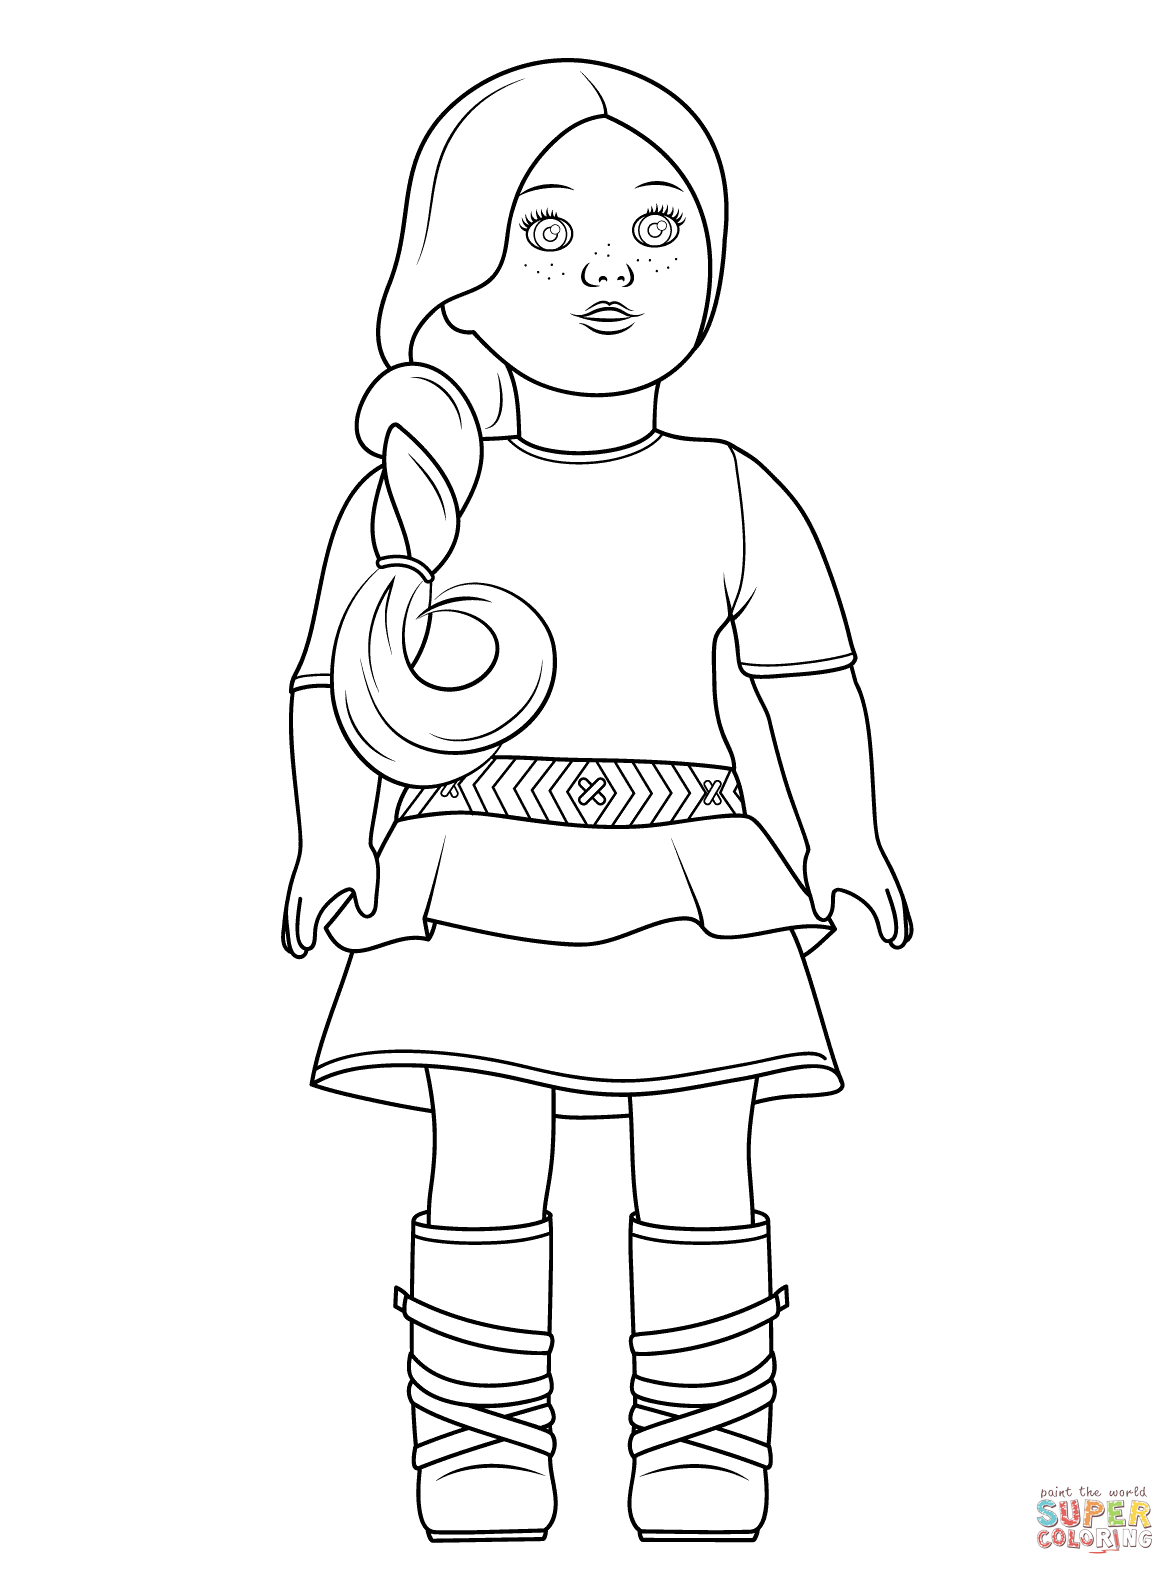 American Girl Saige coloring page | Free Printable Coloring Pages